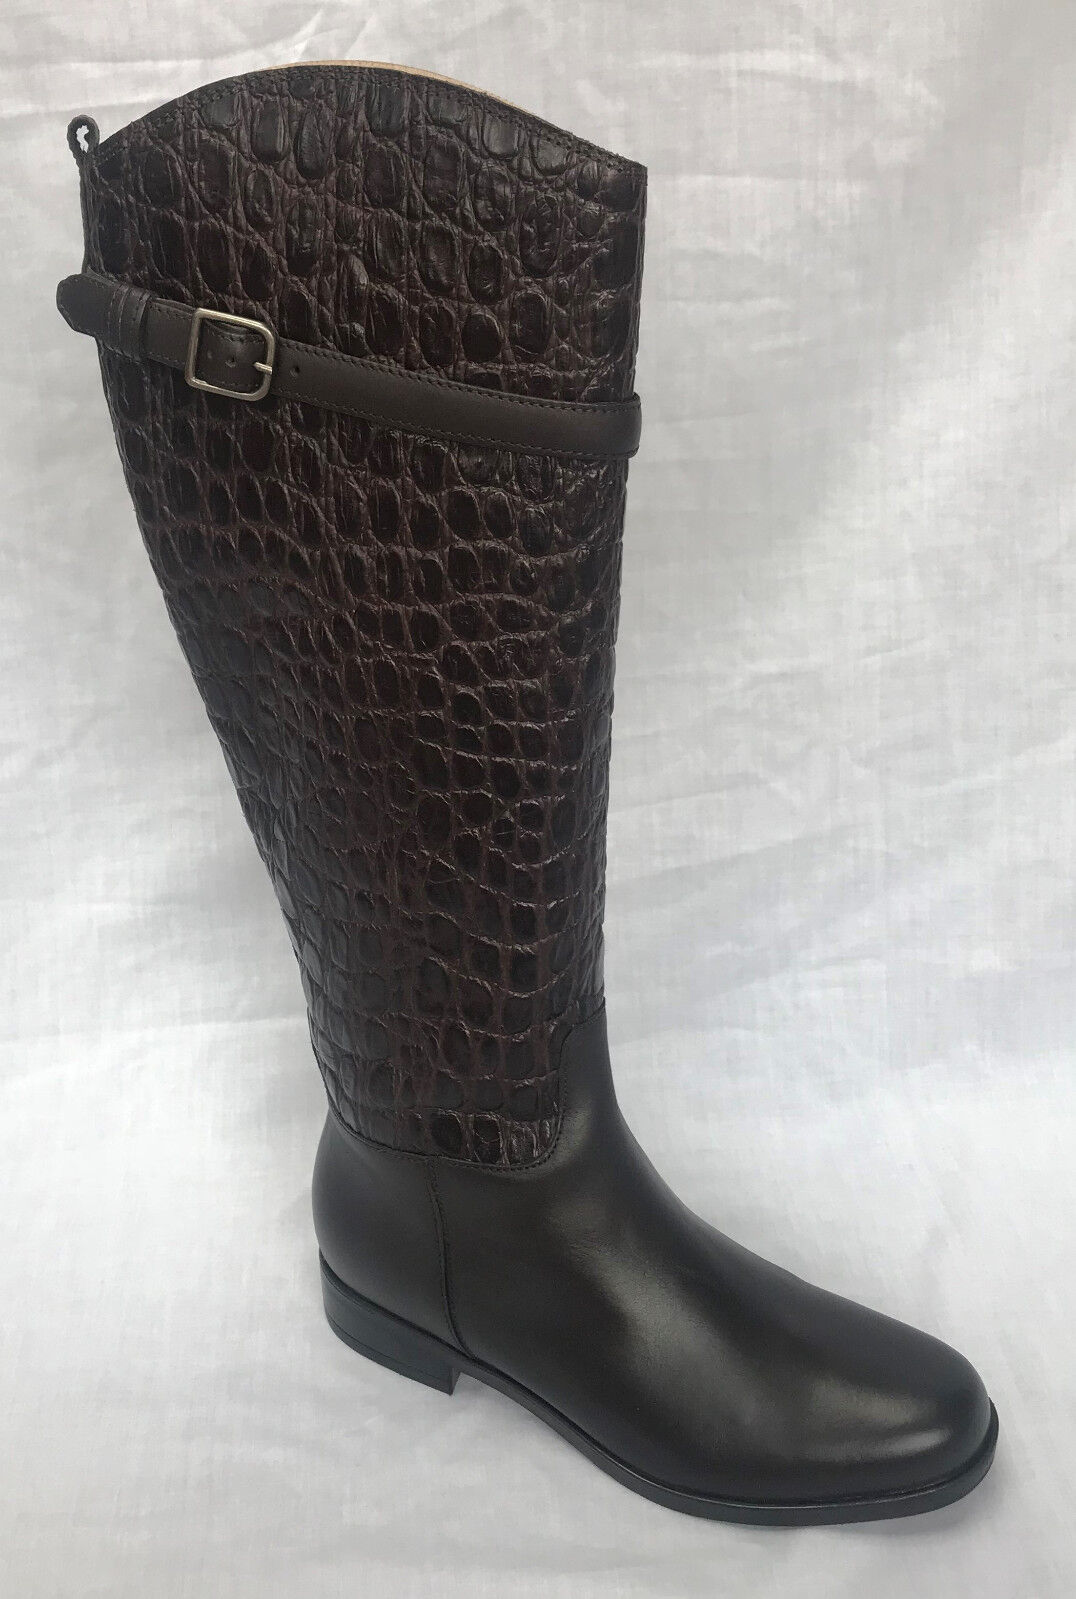 BCBG SHAYNA COGNAC BROWN DISTRESSED KNEE HIGH GOLD BUCKLE LUG SOLE LEATHER BOOTS